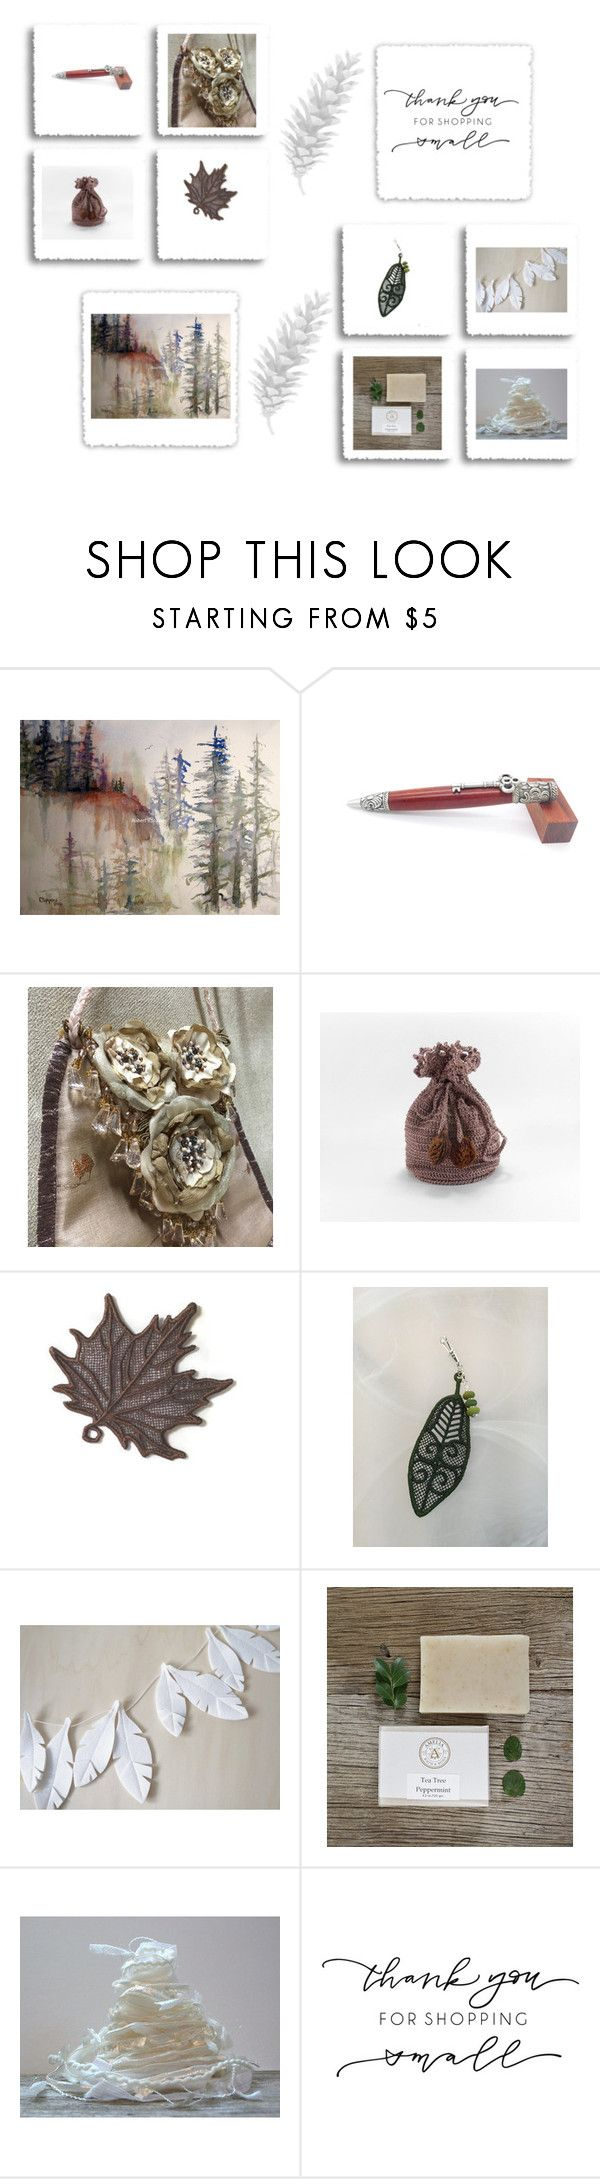 """Small Shops"" by keepsakedesignbycmm ❤ liked on Polyvore featuring interior, interiors, interior design, home, home decor, interior decorating, art, accessories, homedecor and gifts"